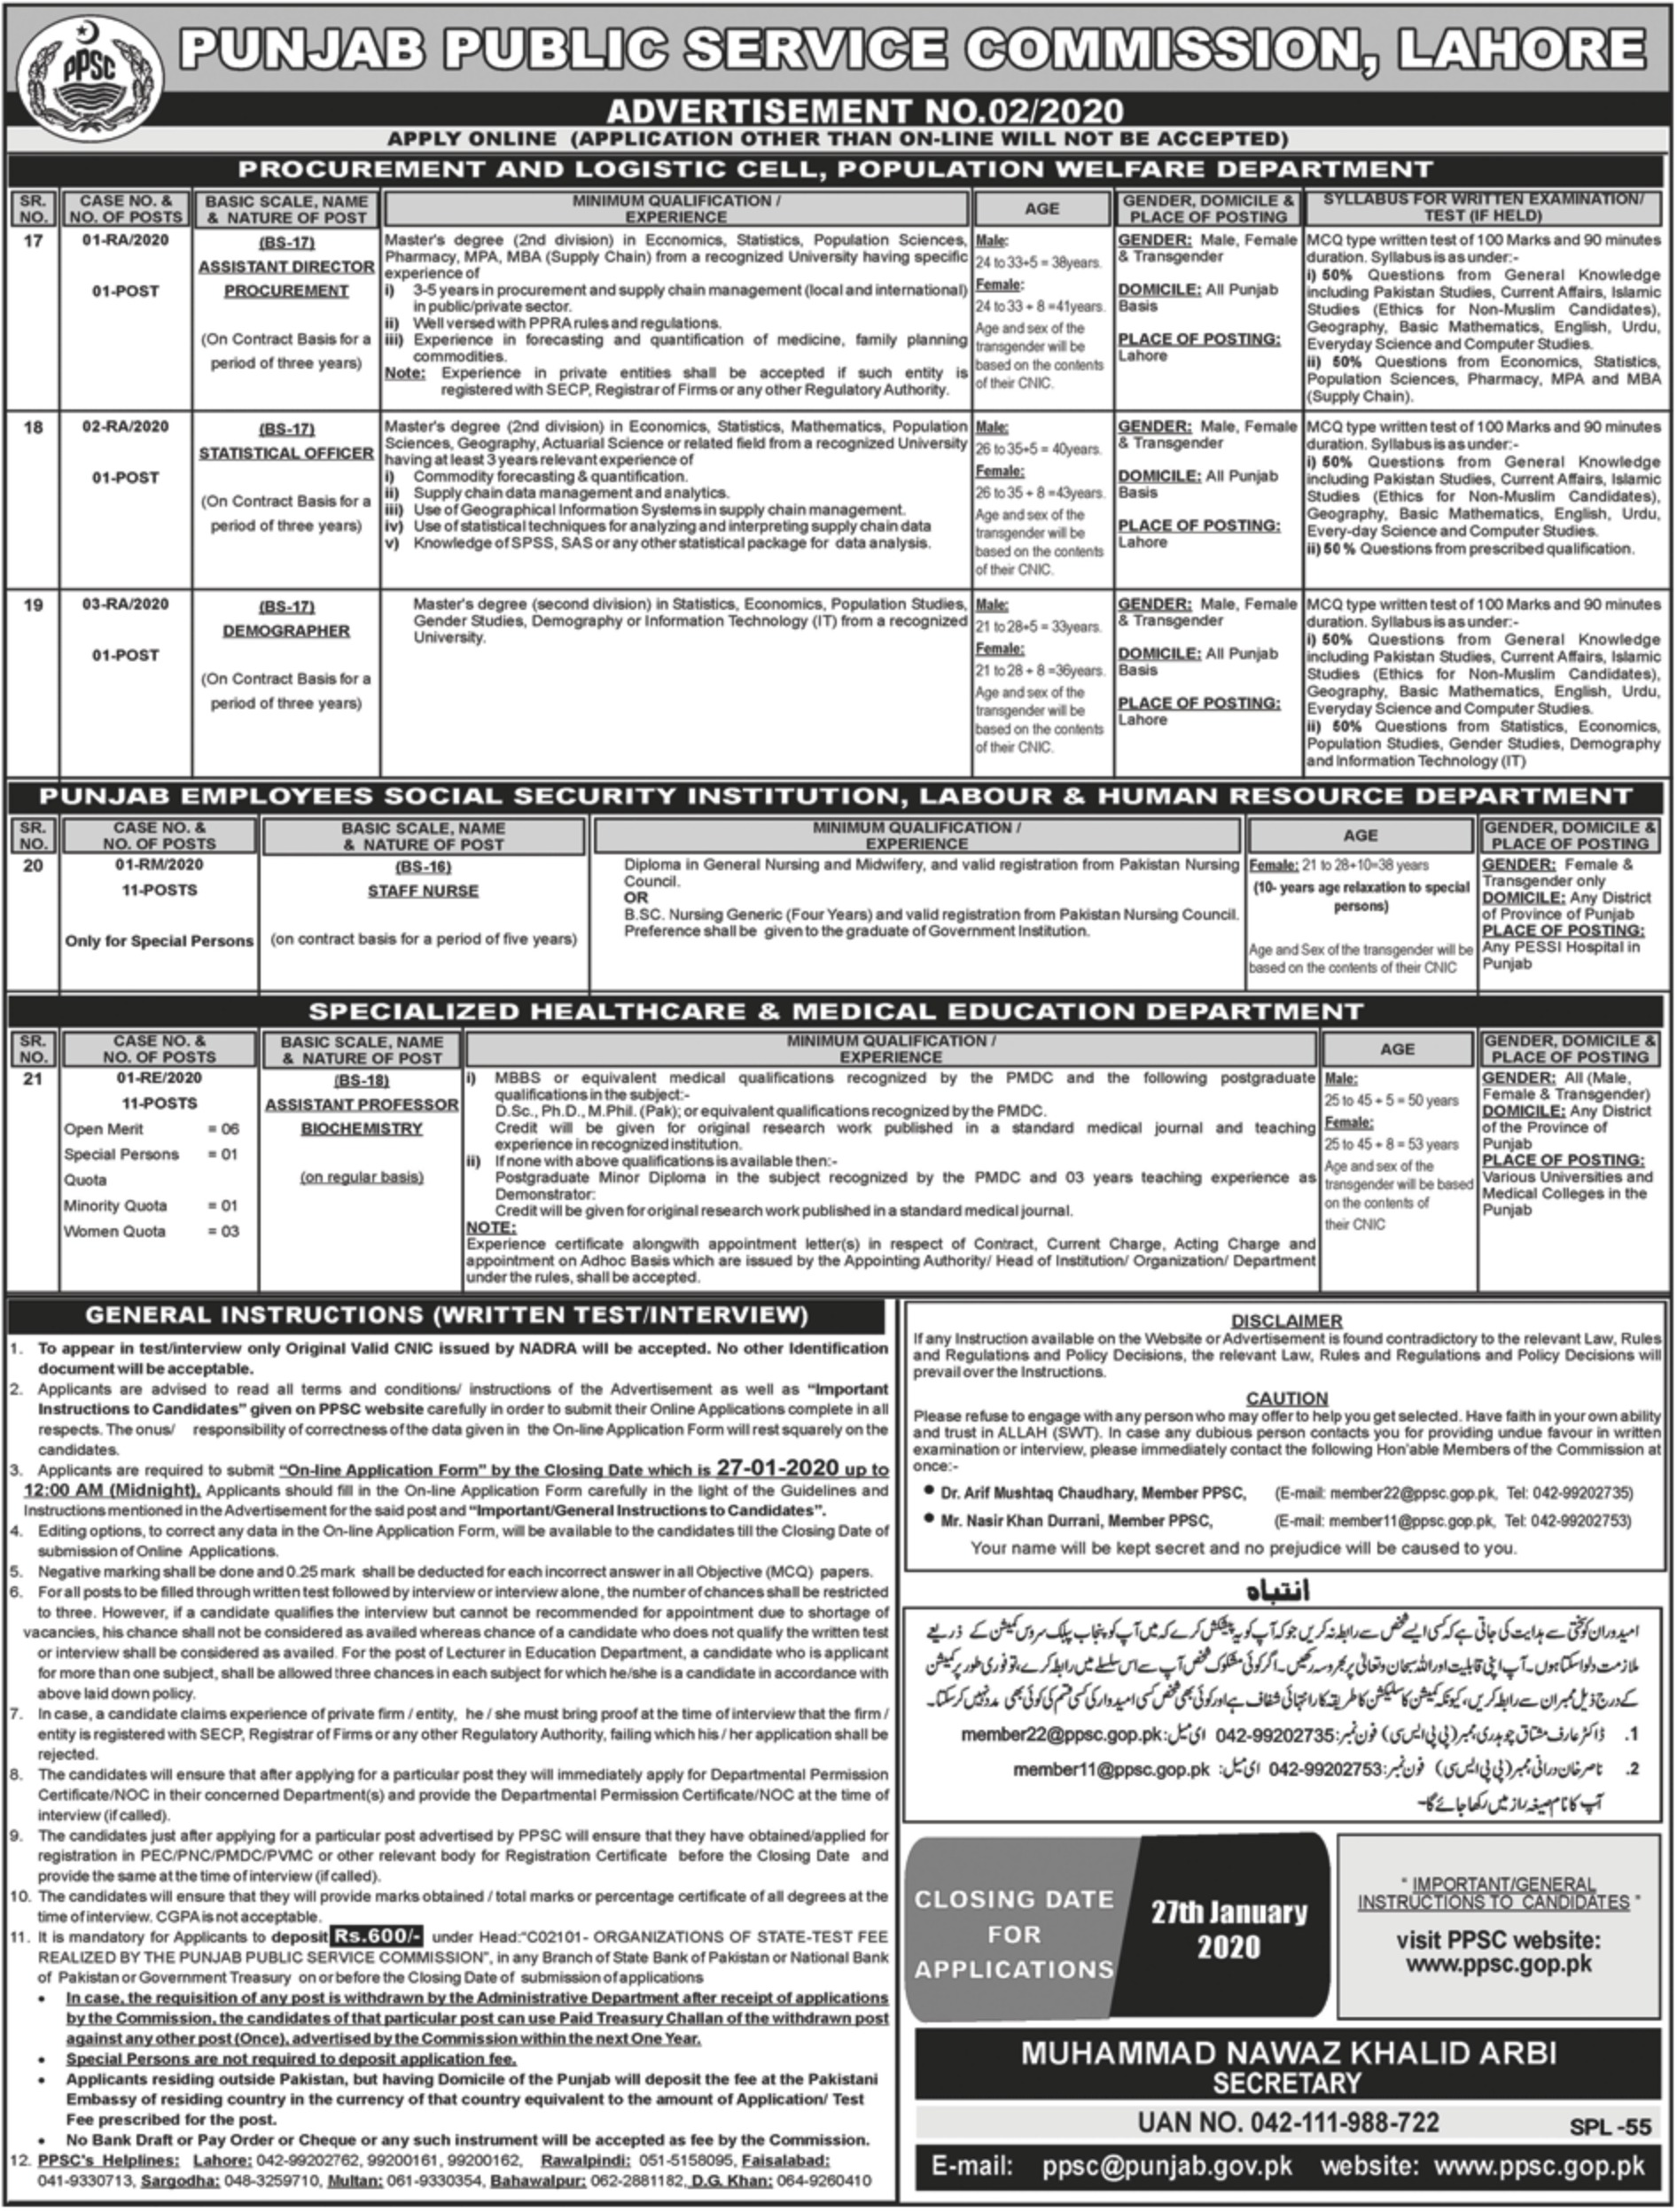 Punjab Public Service Commission PPSC Jobs 2020 Latest